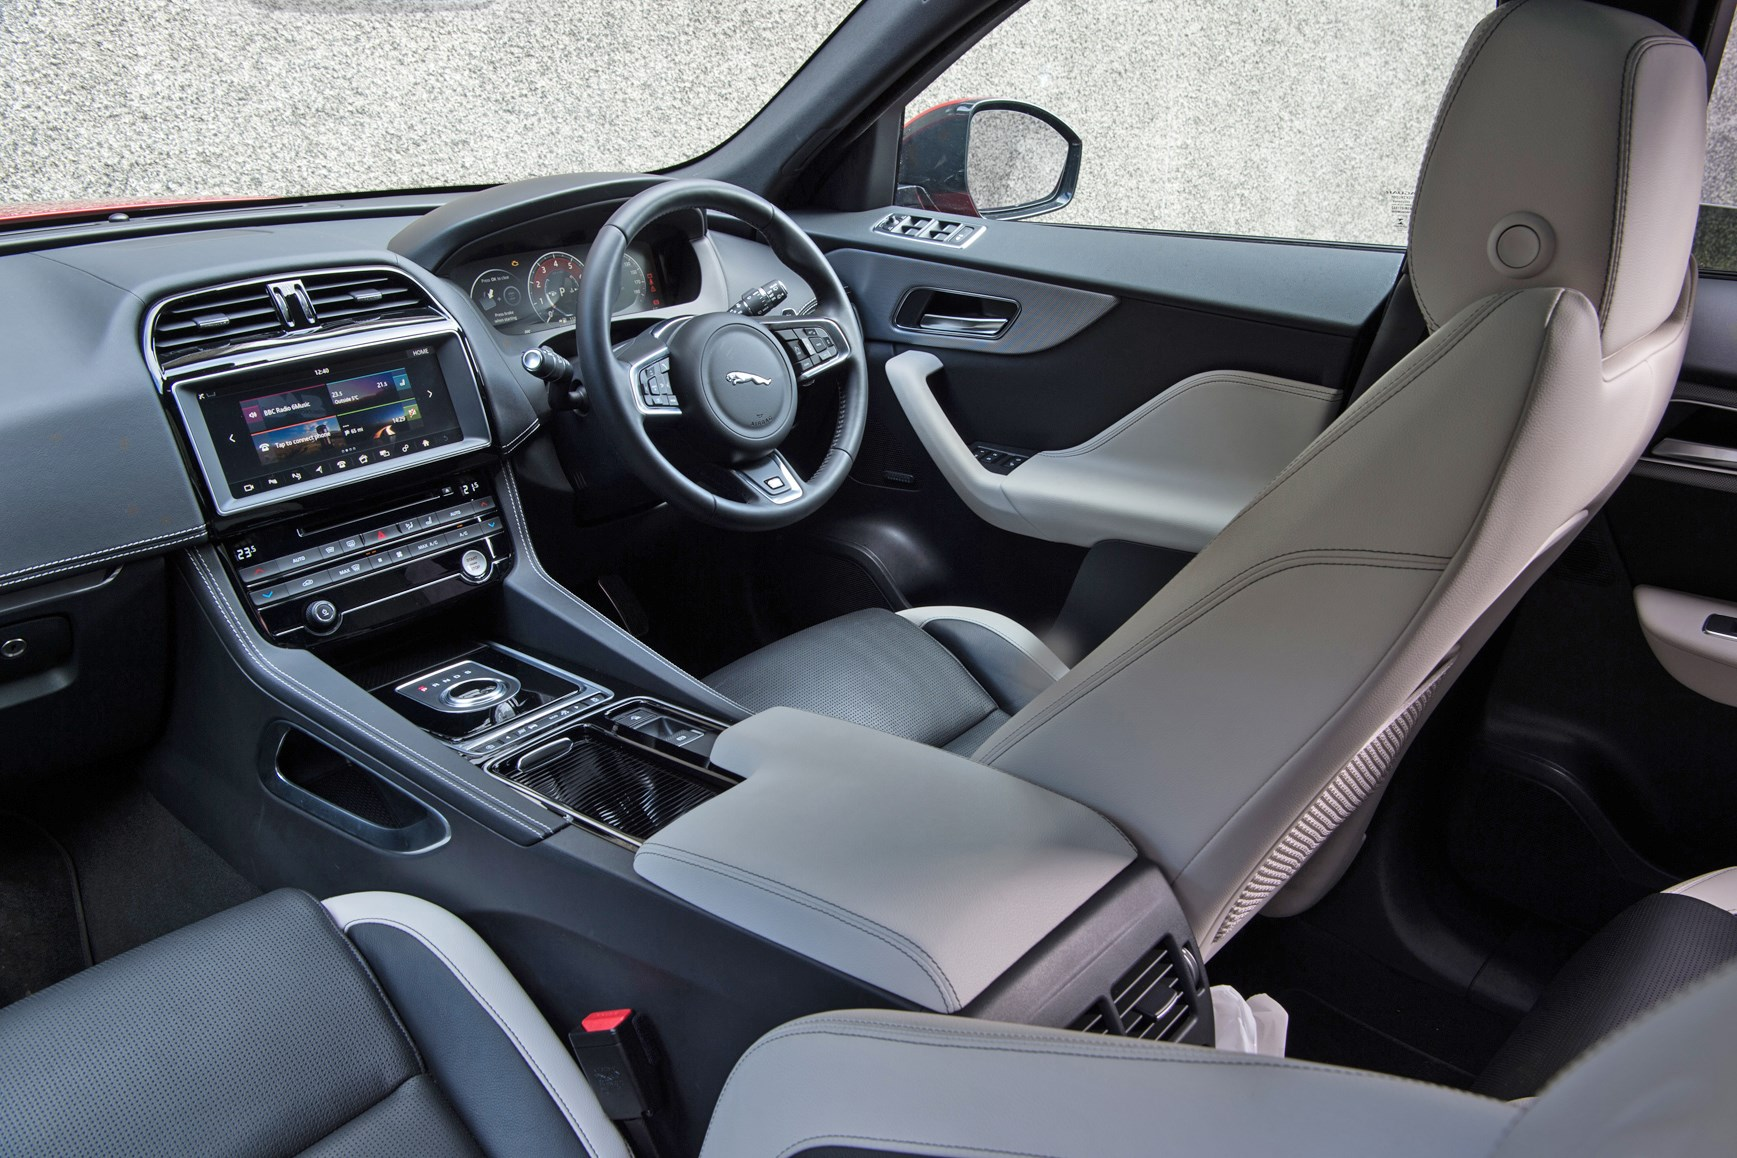 Black 2016 Jaguar F-Pace SUV dashboard and front seats